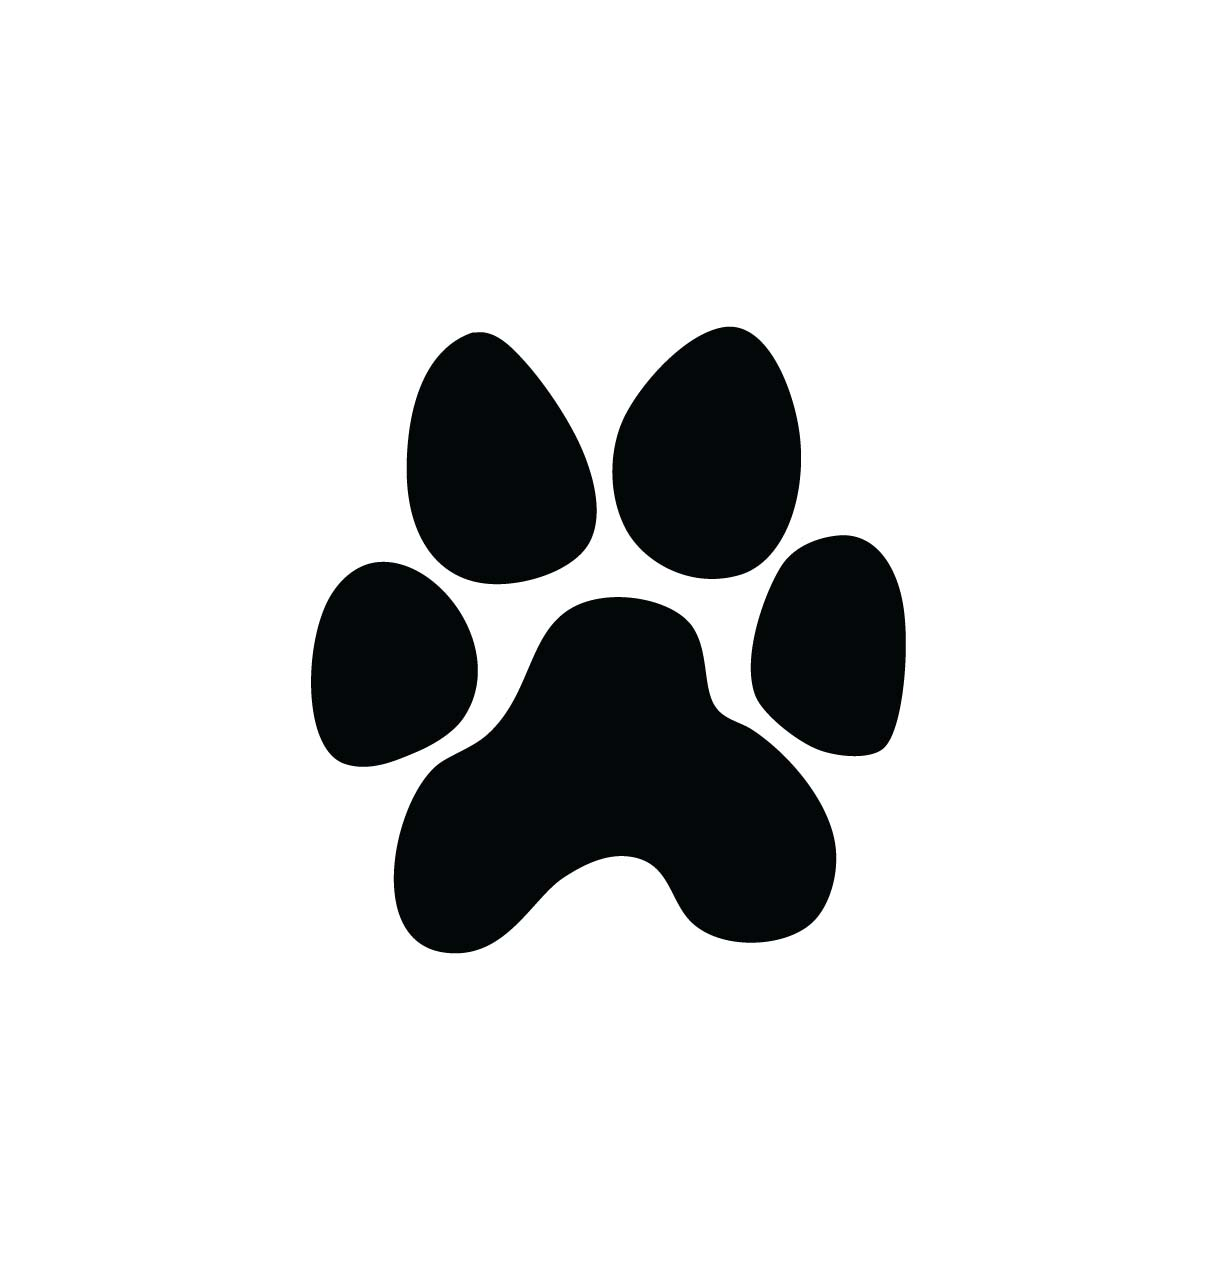 Paw print clipart jpeg royalty free download Panther Paw Print Clip Art & Panther Paw Print Clip Art Clip Art ... royalty free download